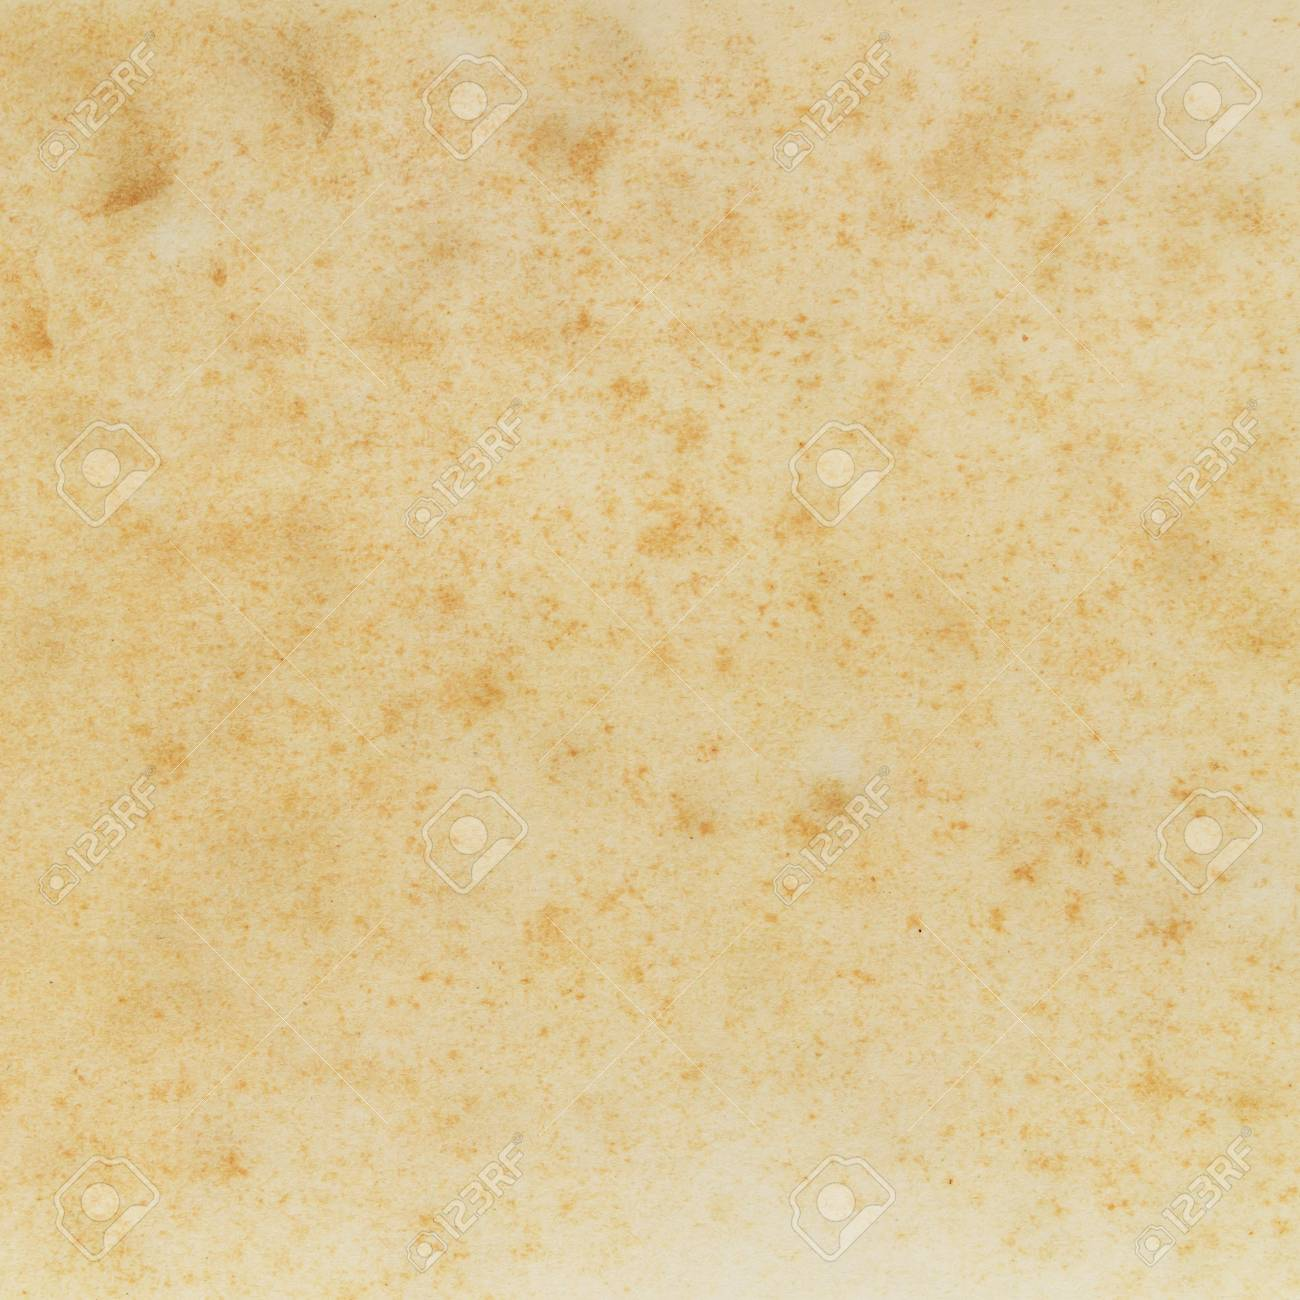 Vintage old paper background and texture Stock Photo - 15164025